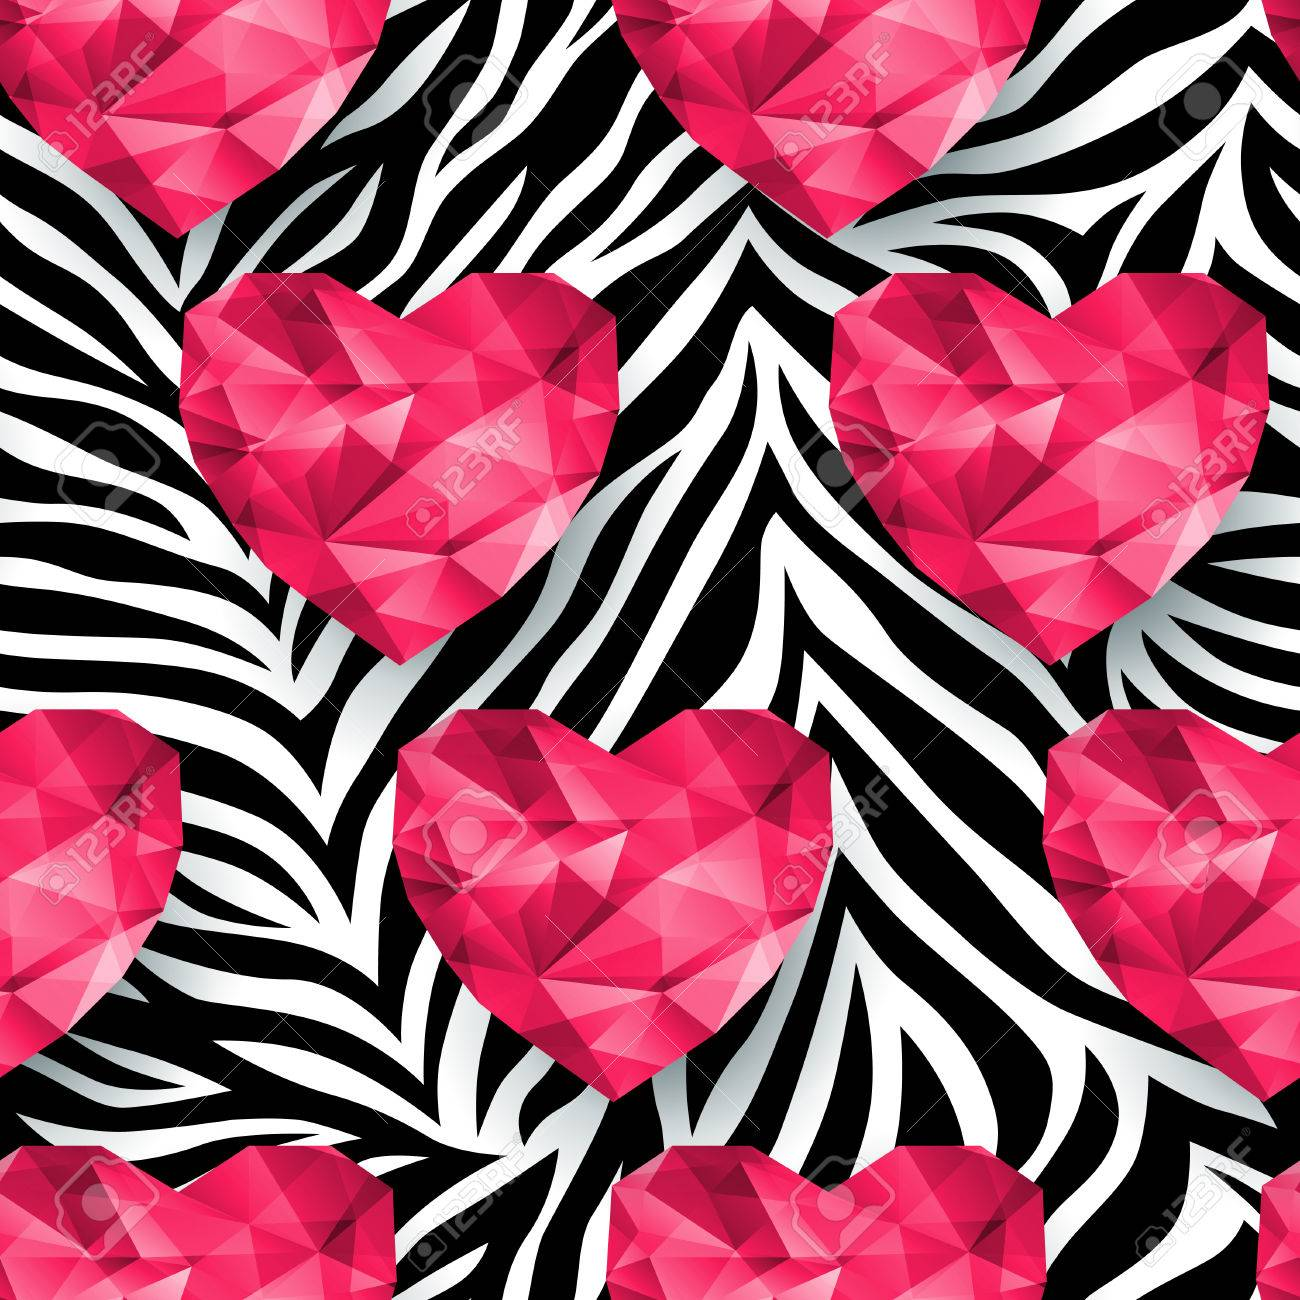 Image of: Printable Animal Print Zebra Texture Polygonal Hearts Endless Texture Can Be Used For Printing 123rfcom Animal Print Zebra Texture Polygonal Hearts Endless Texture